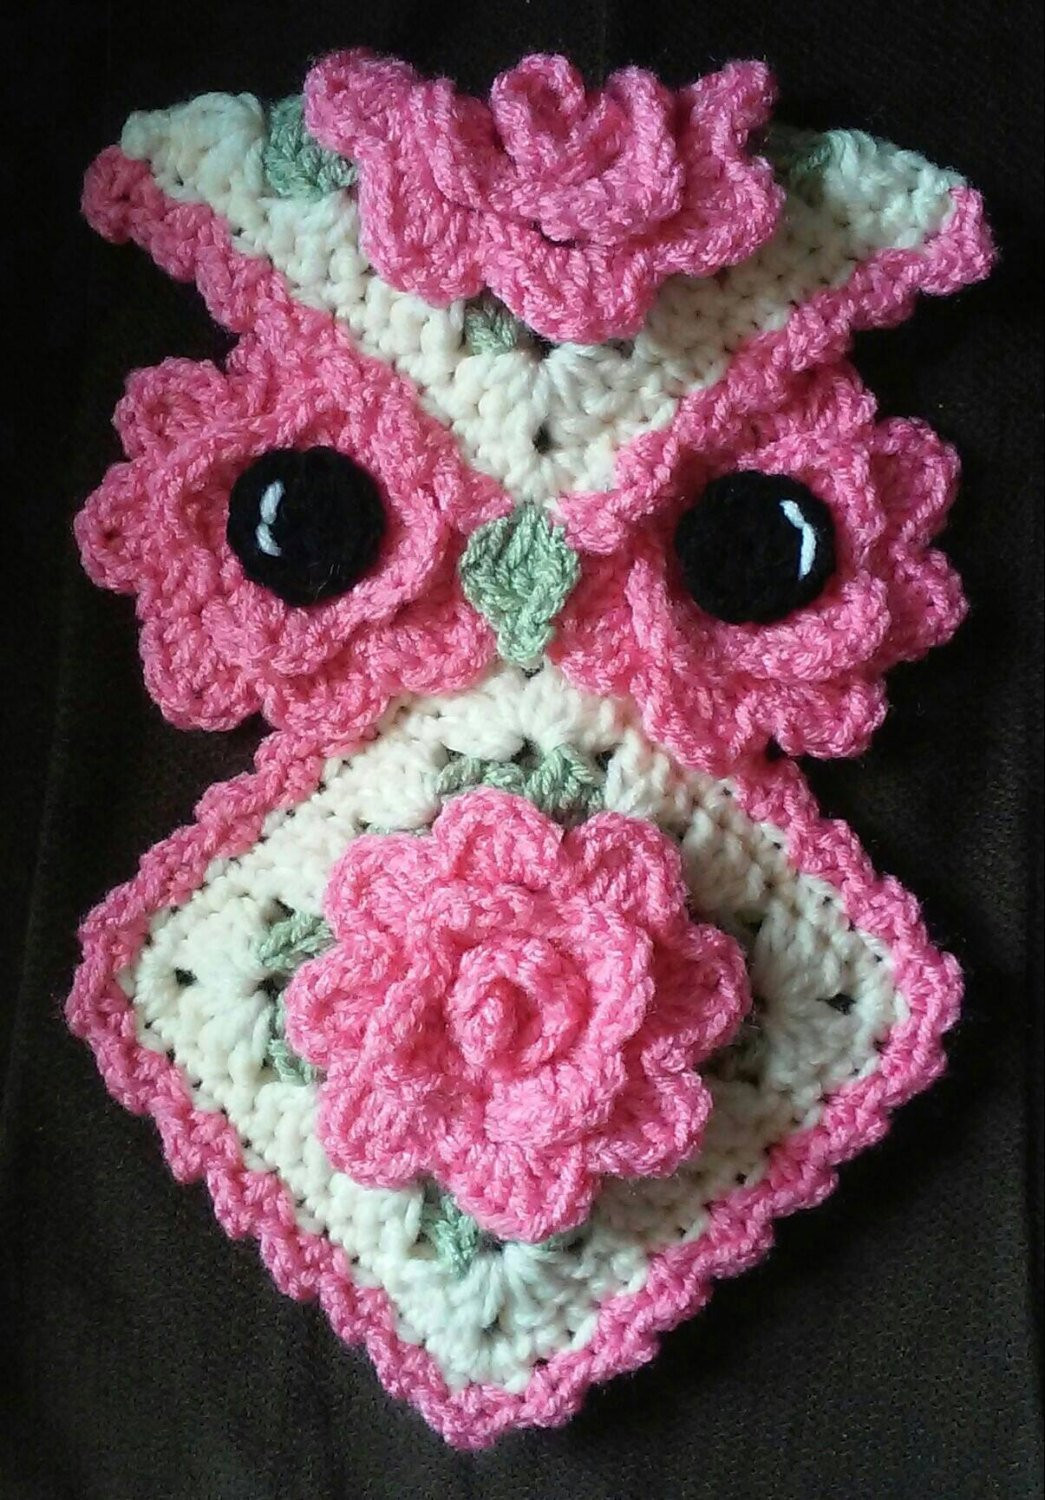 Crochet Potholder Pattern Best Of Crochet Rose Owl Potholder Pattern Ly Of Amazing 43 Pictures Crochet Potholder Pattern